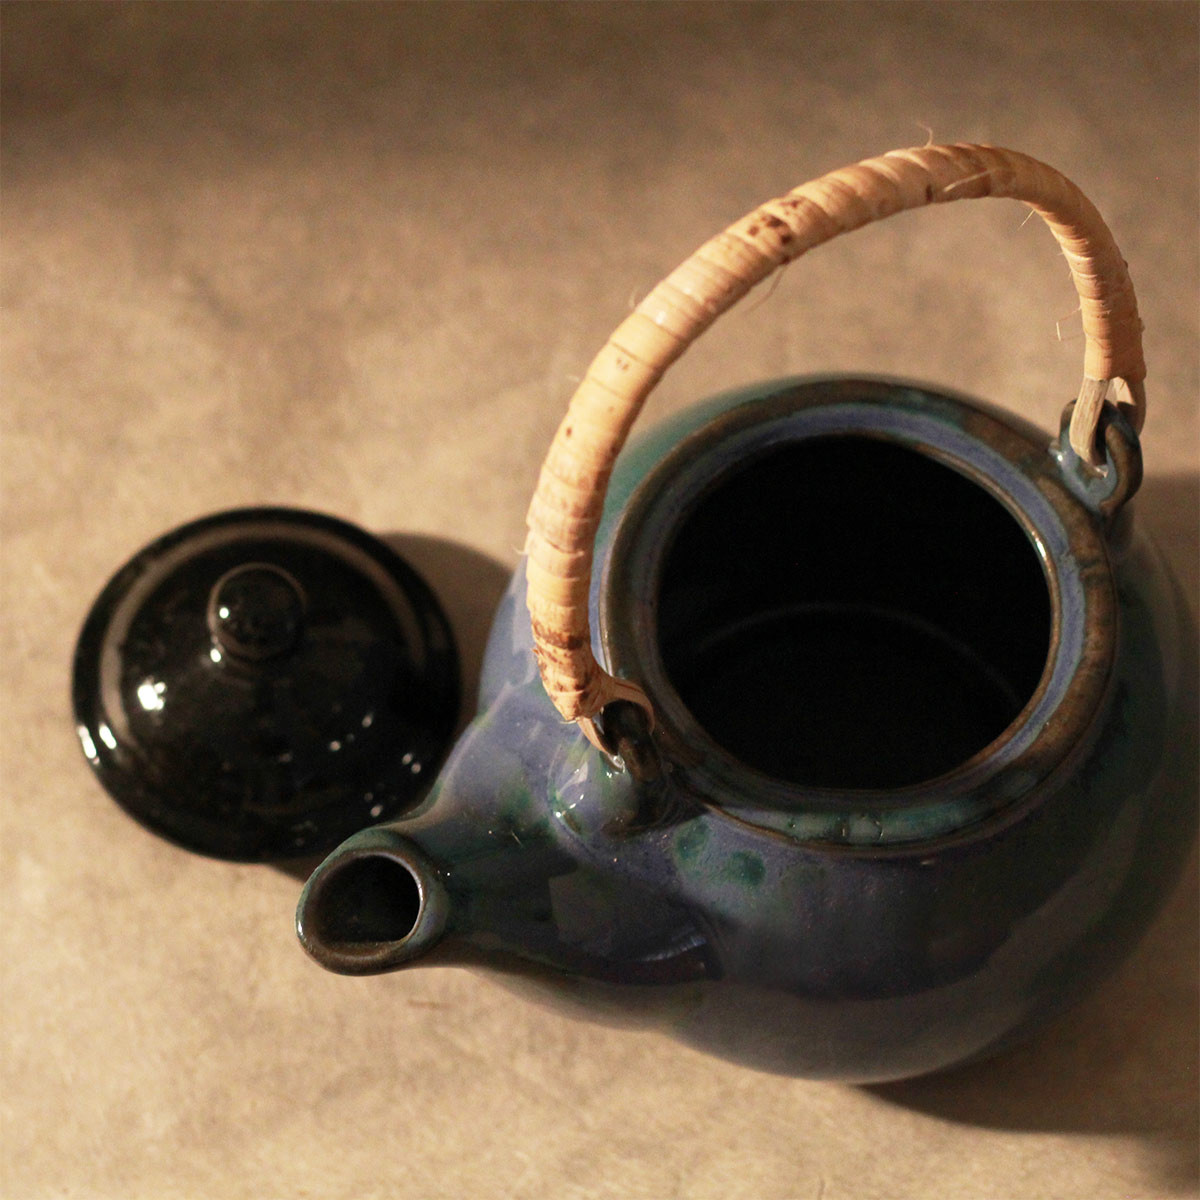 Ceramic Tea Pot (Blue and Black)